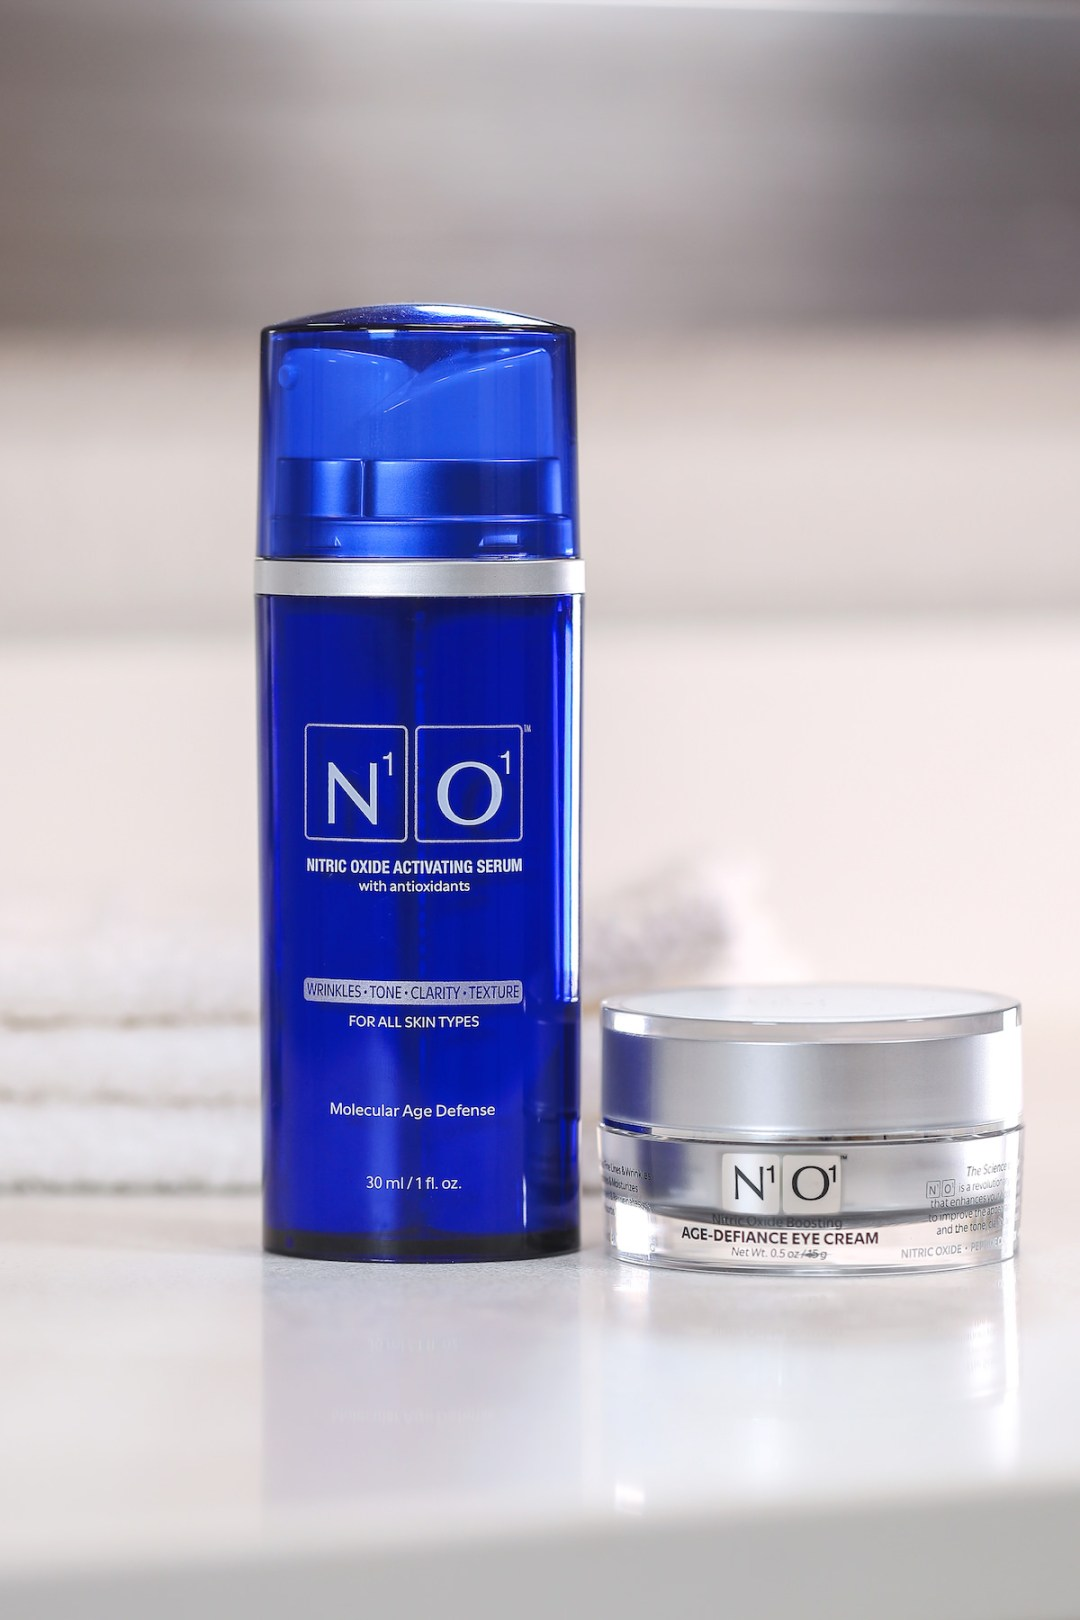 Nitric Oxide Activating AGE-DEFIANCE SERUM WITH FREE EYE CREAM